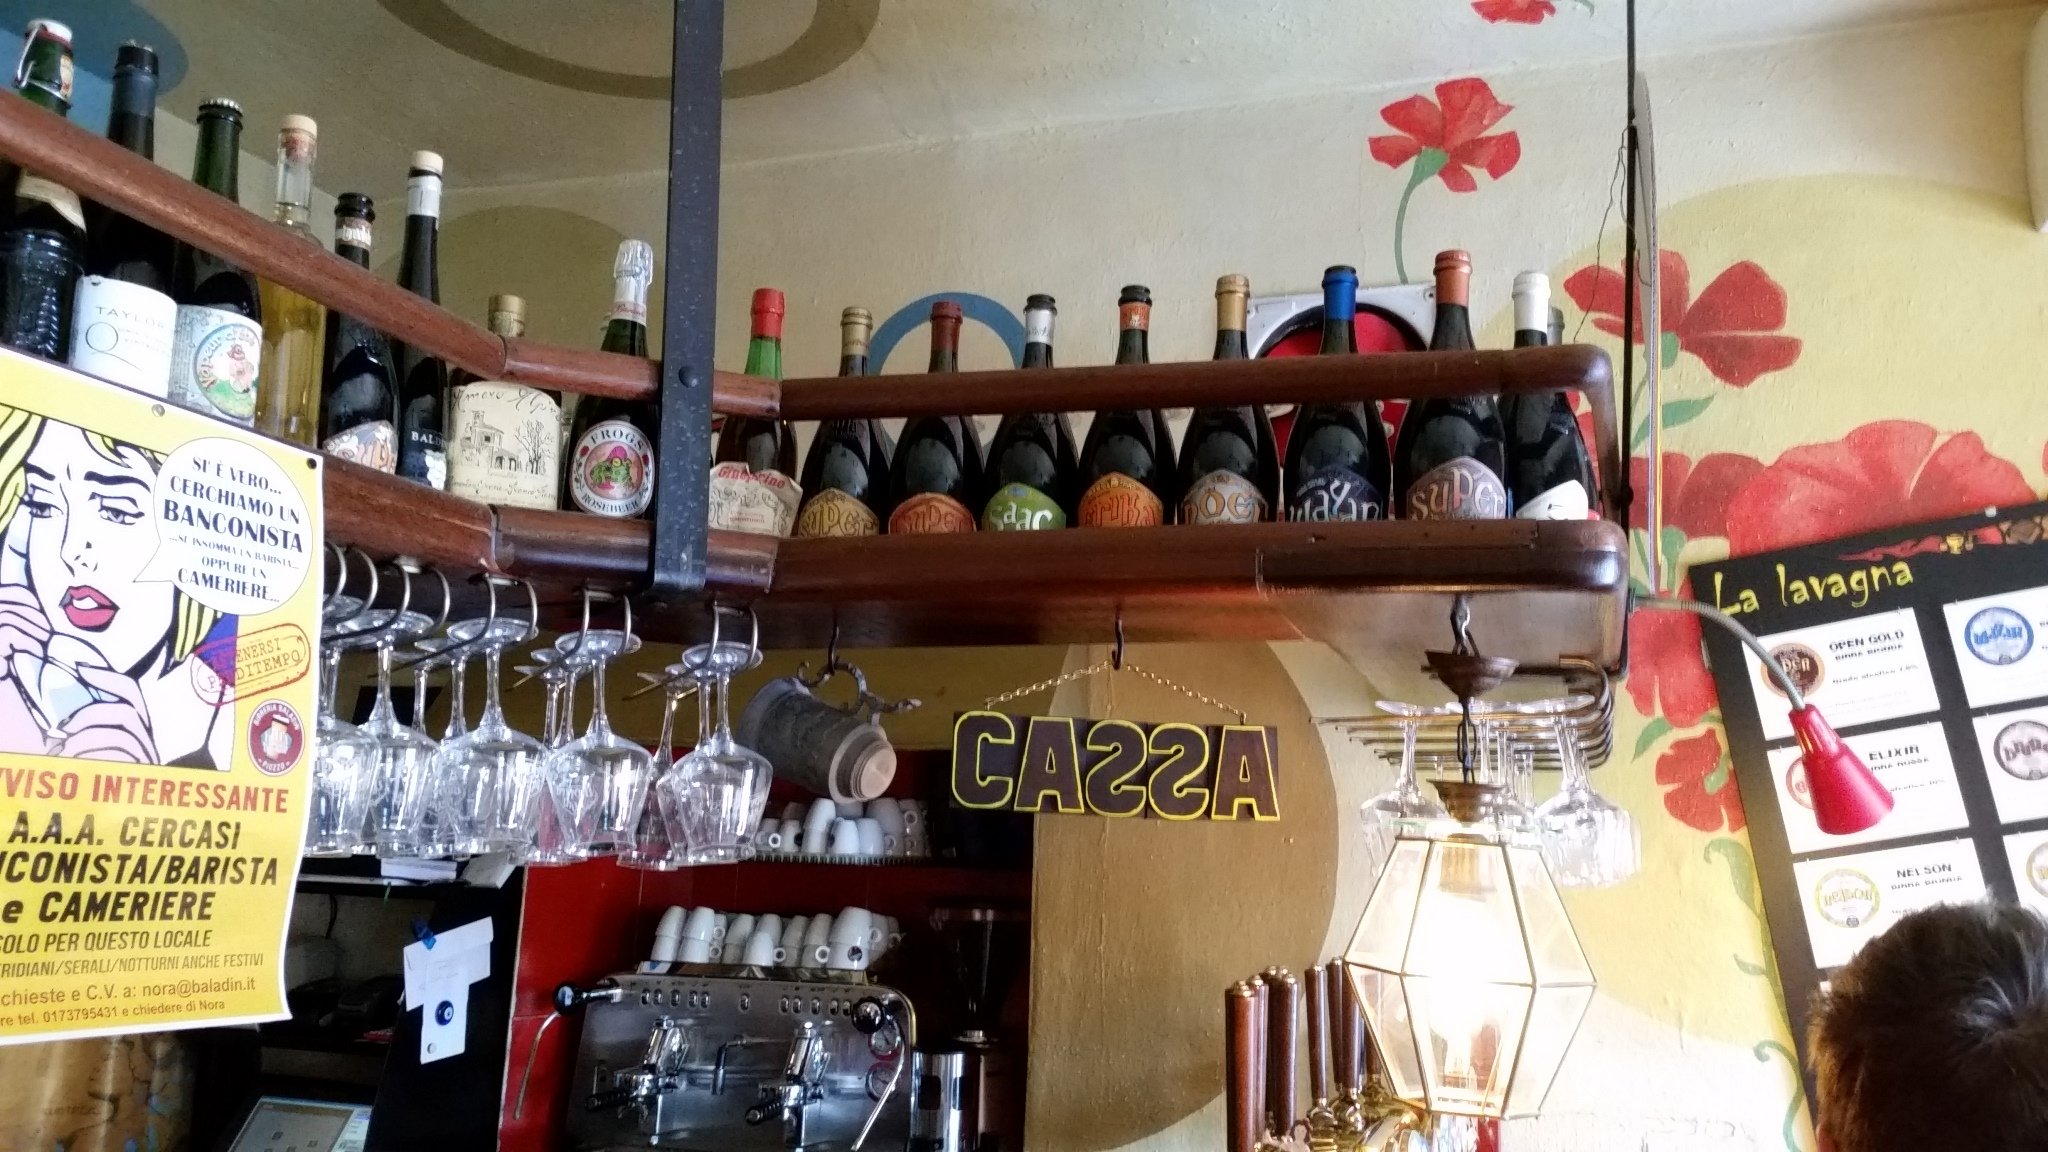 Province of Cuneo, Italy Food Guide: 3 Bar food Must-Eat Restaurants & Street Food Stalls in Dogliani